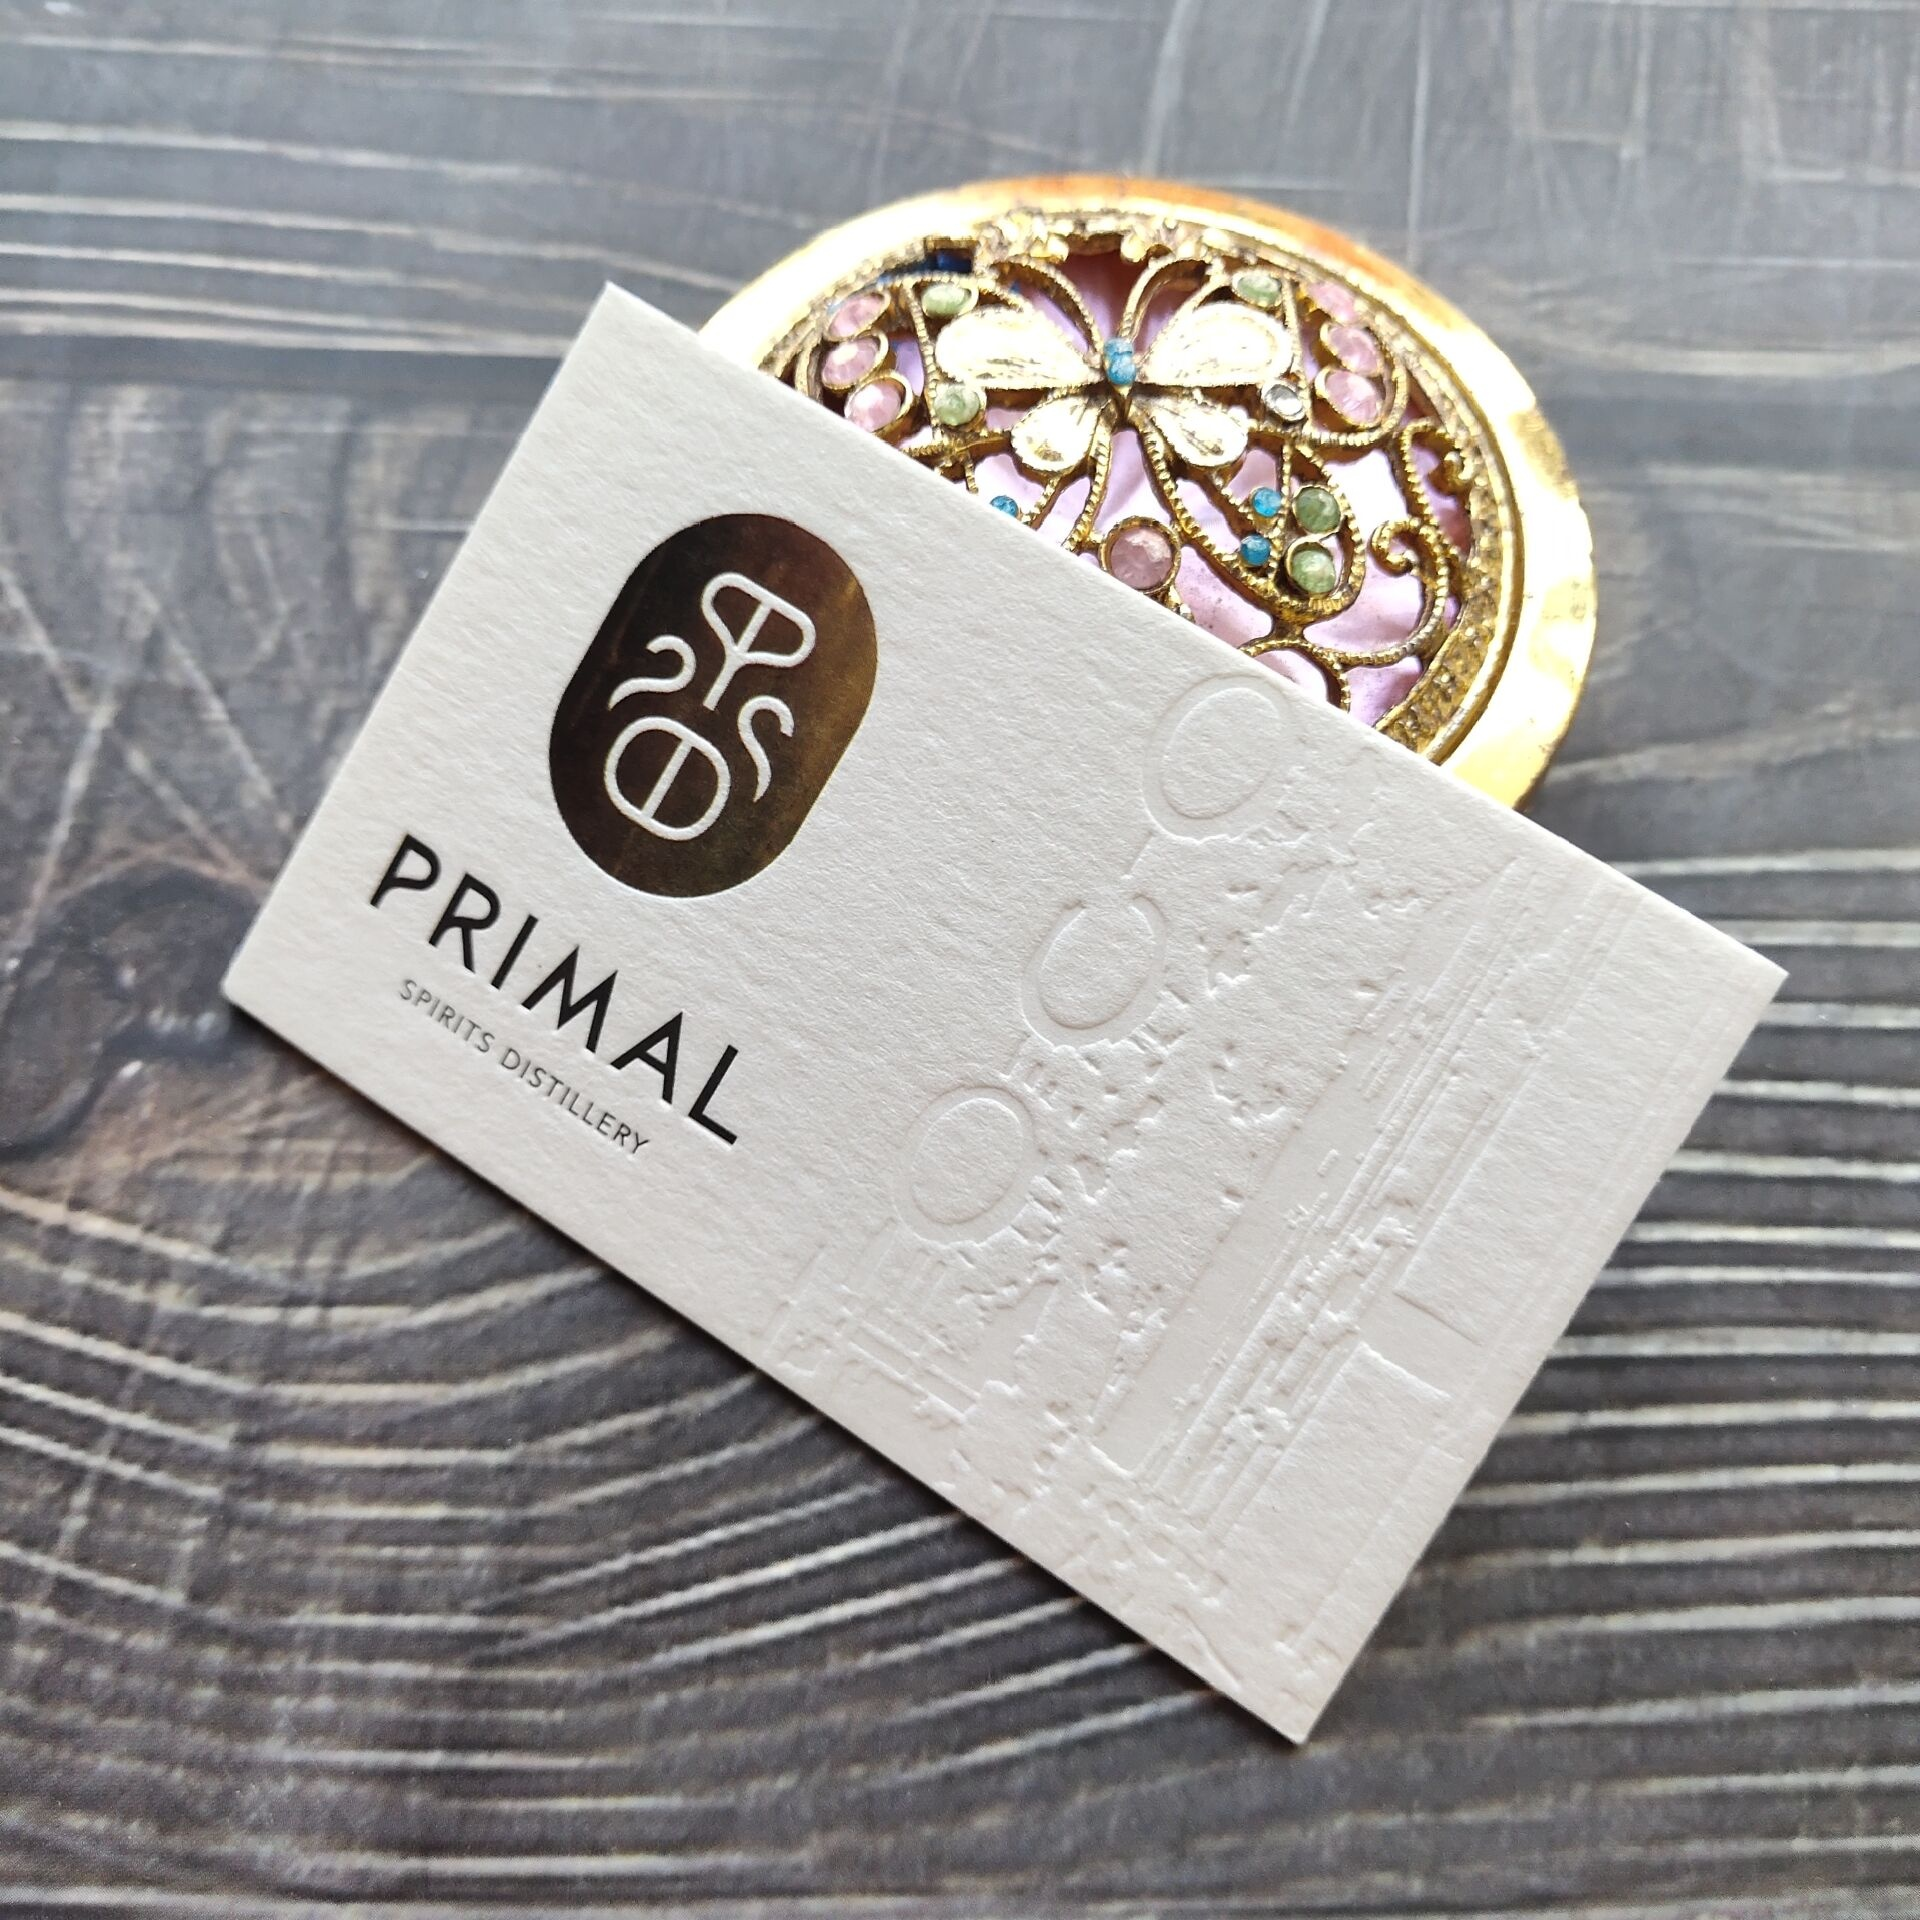 600gsm cotton paper gold edge cards gold foil stamping gold edge business cards